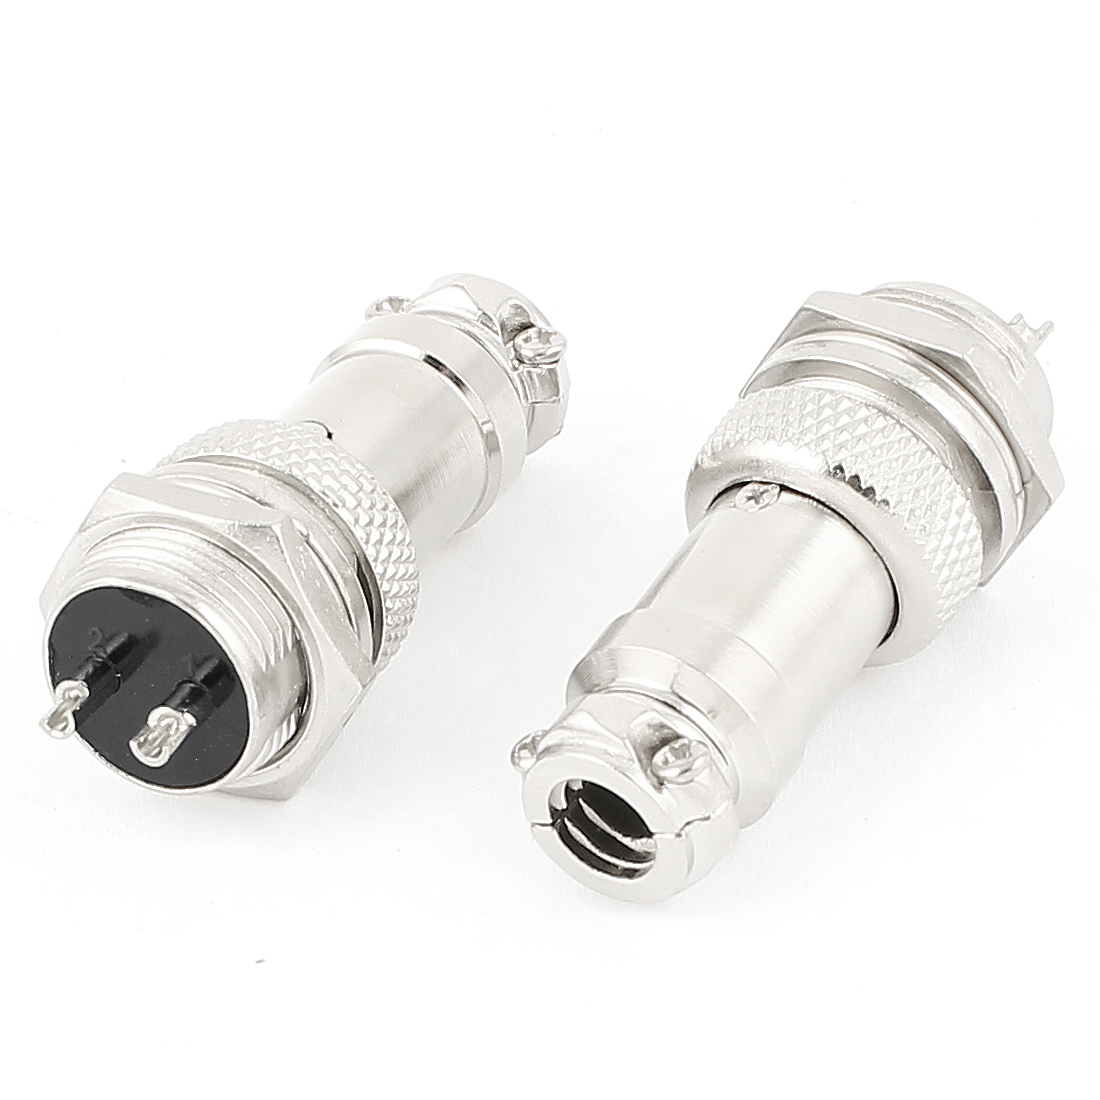 2 Pairs 16mm Thread Male Female Panel Metal Aviation Wire Connector